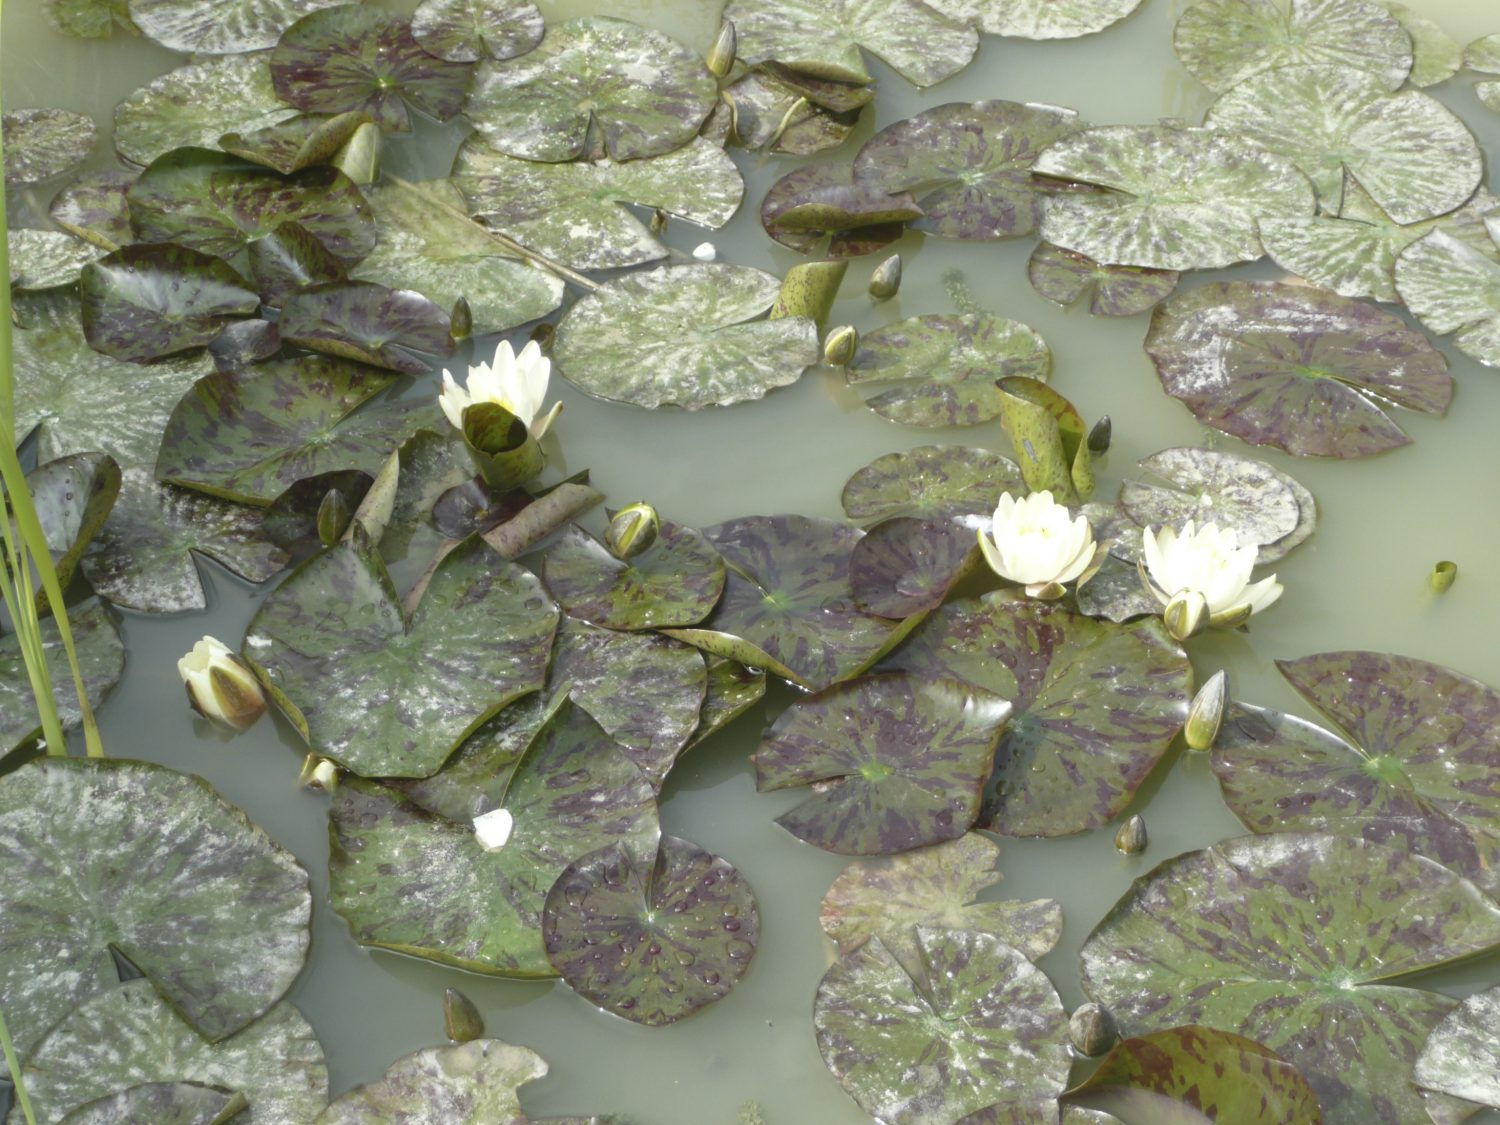 Lovely water lilies